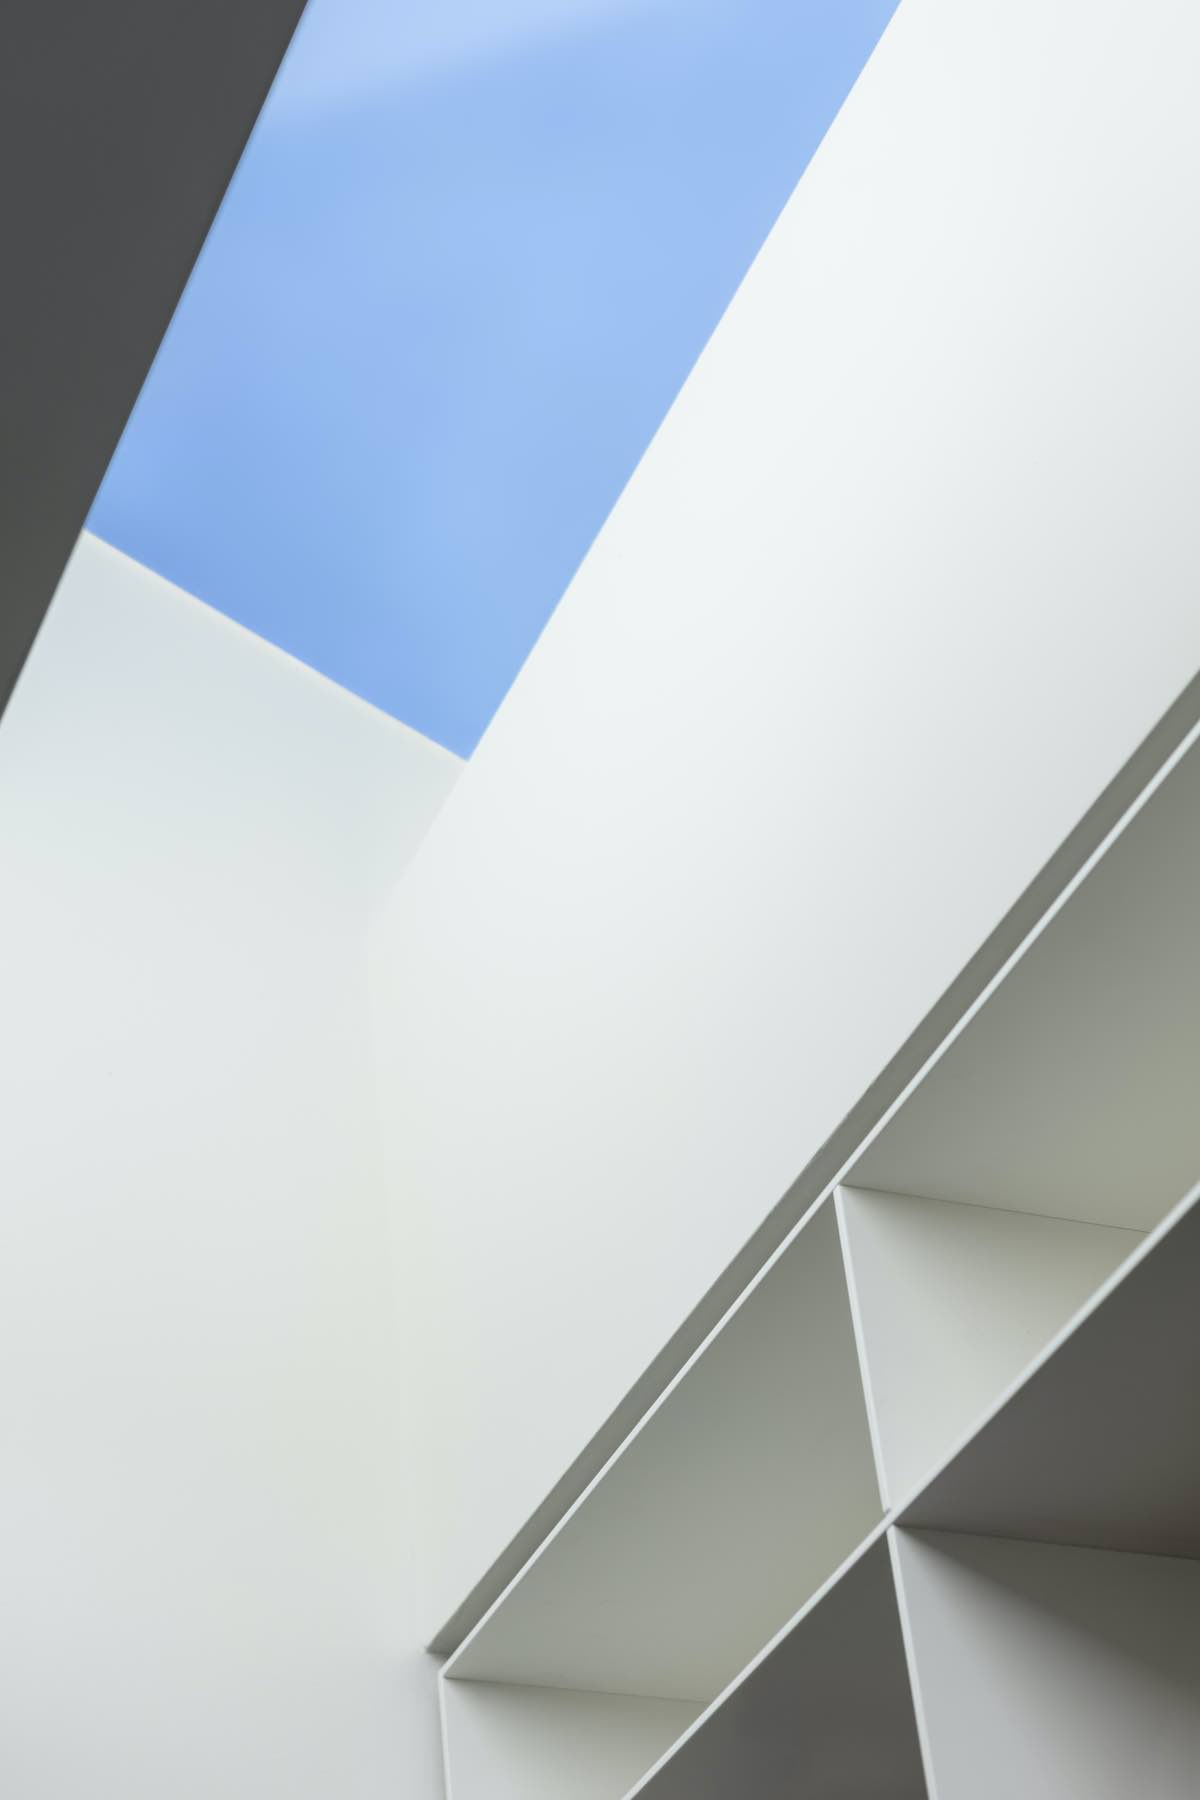 blue sky and white walls